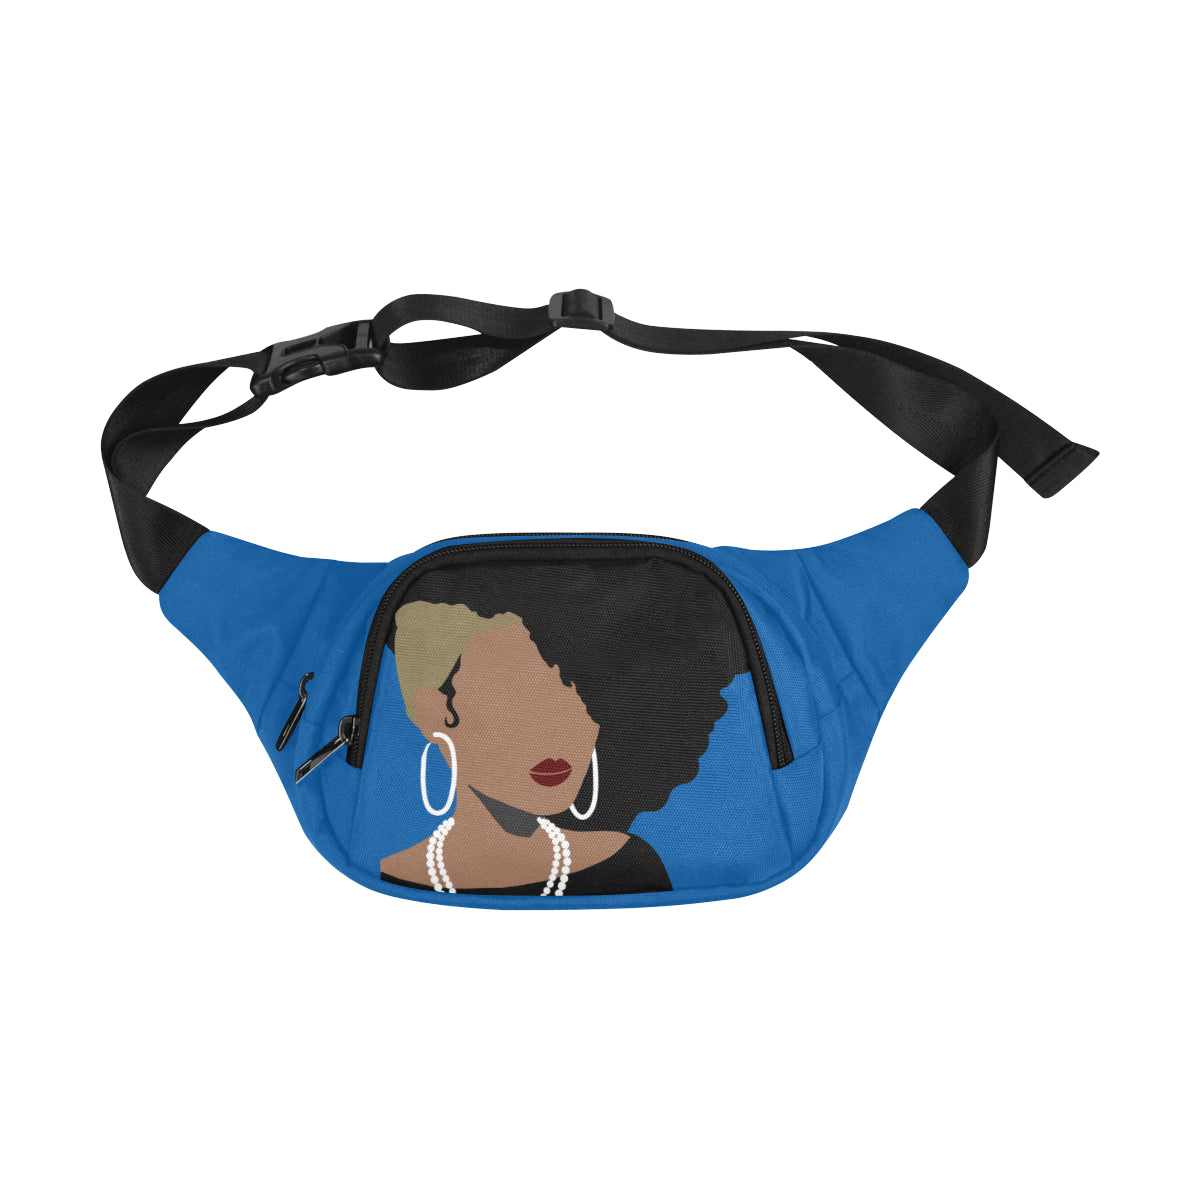 Bougie - Andrea 1900 Fanny Pack